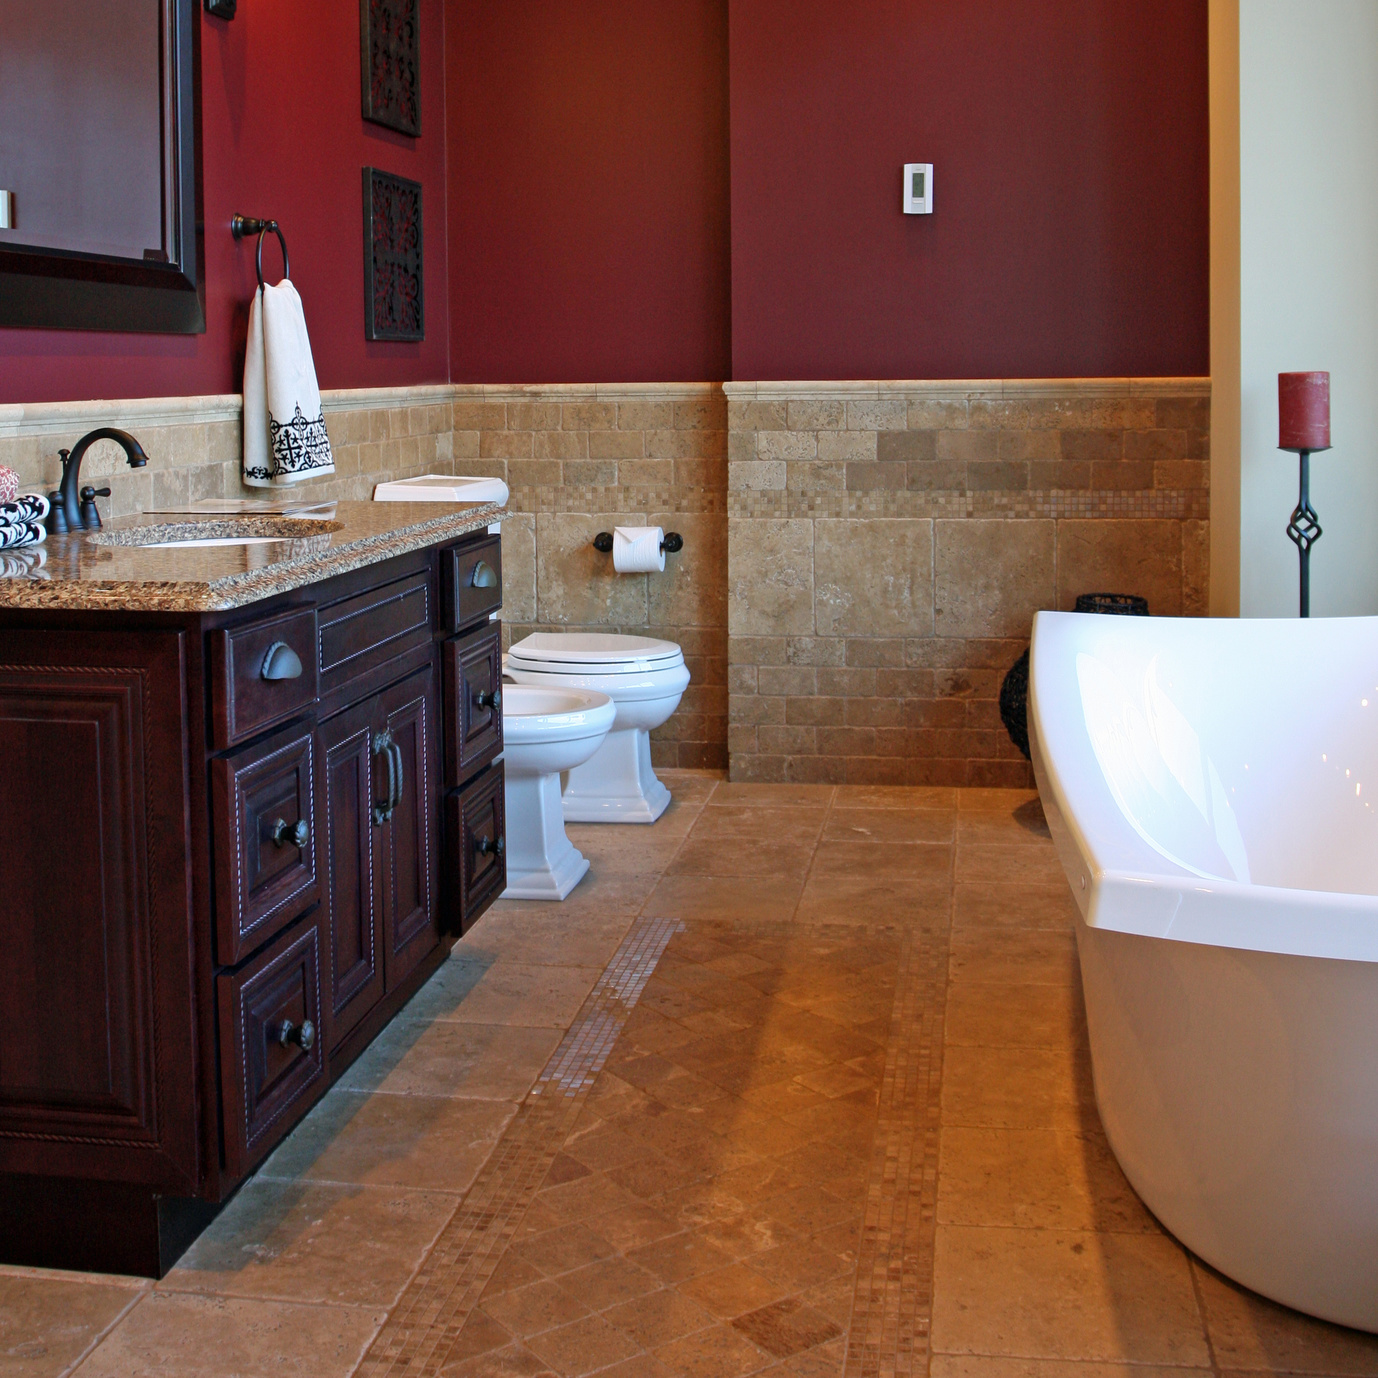 Home Remodeling And Construction The Woodlands And North Houston - Bathroom remodel the woodlands